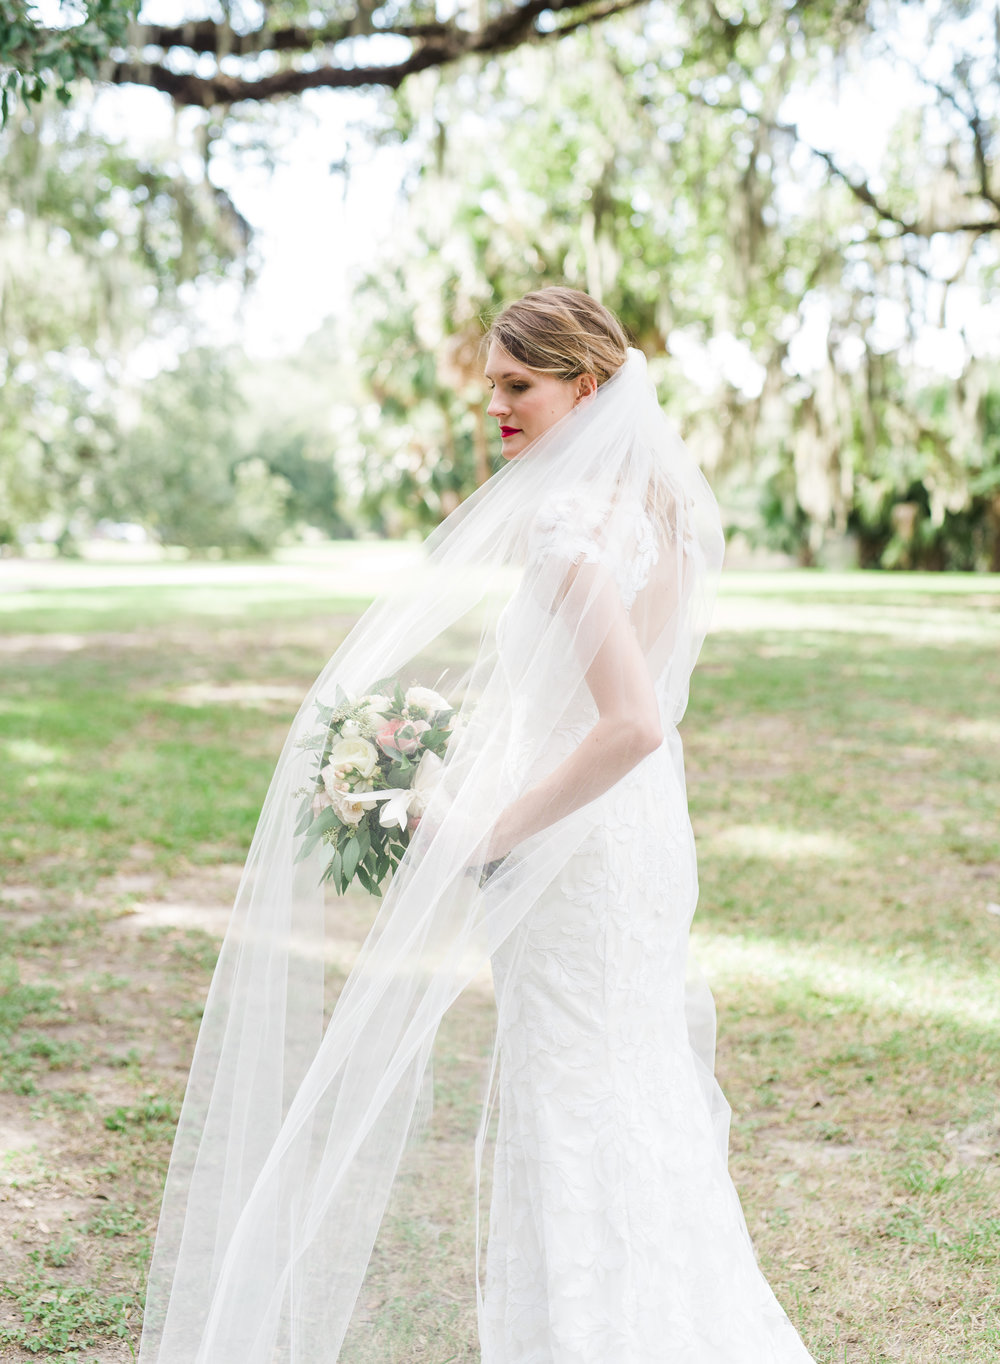 Wedding Planners Nola 9.jpg